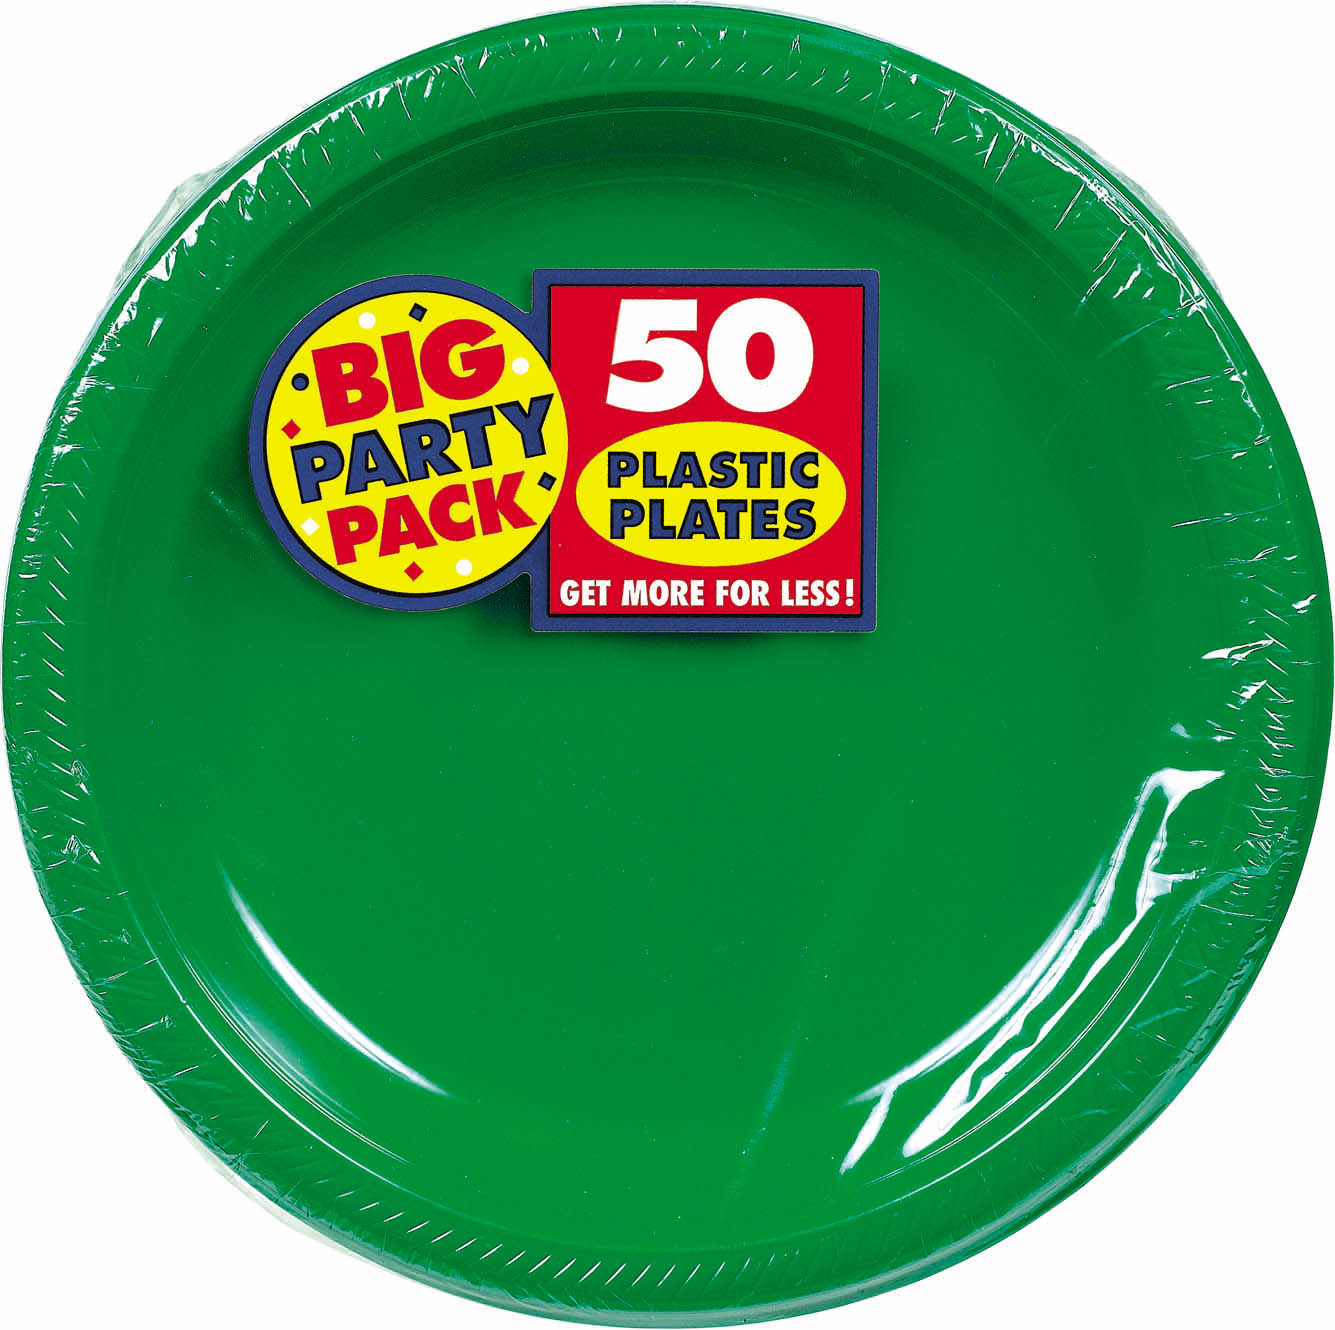 Big Party Pack 10 1/4 inch Plastic Plates- Festive Green